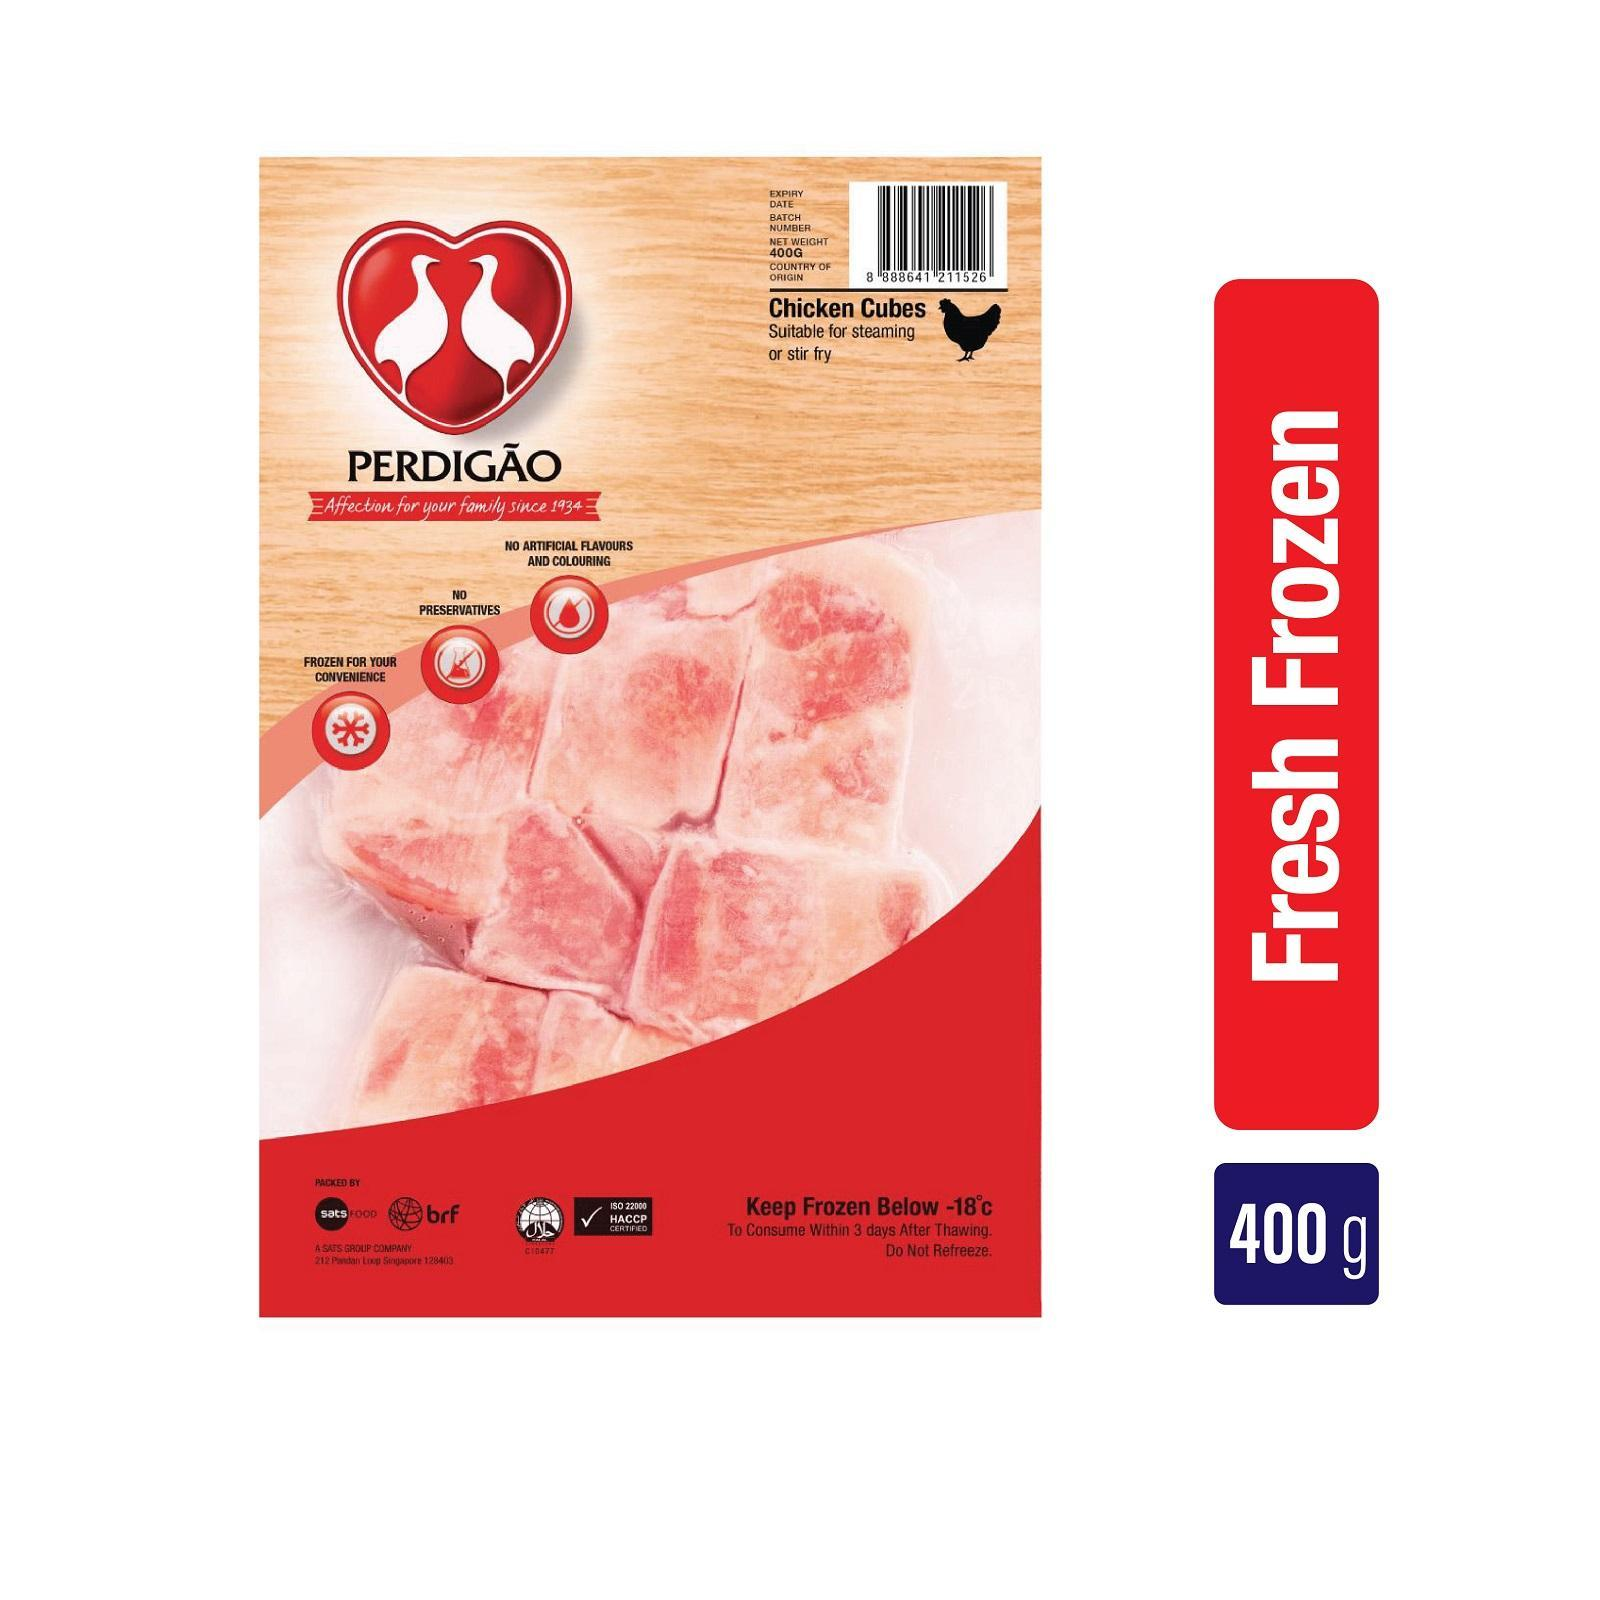 Perdigao Chicken Cubes - Frozen